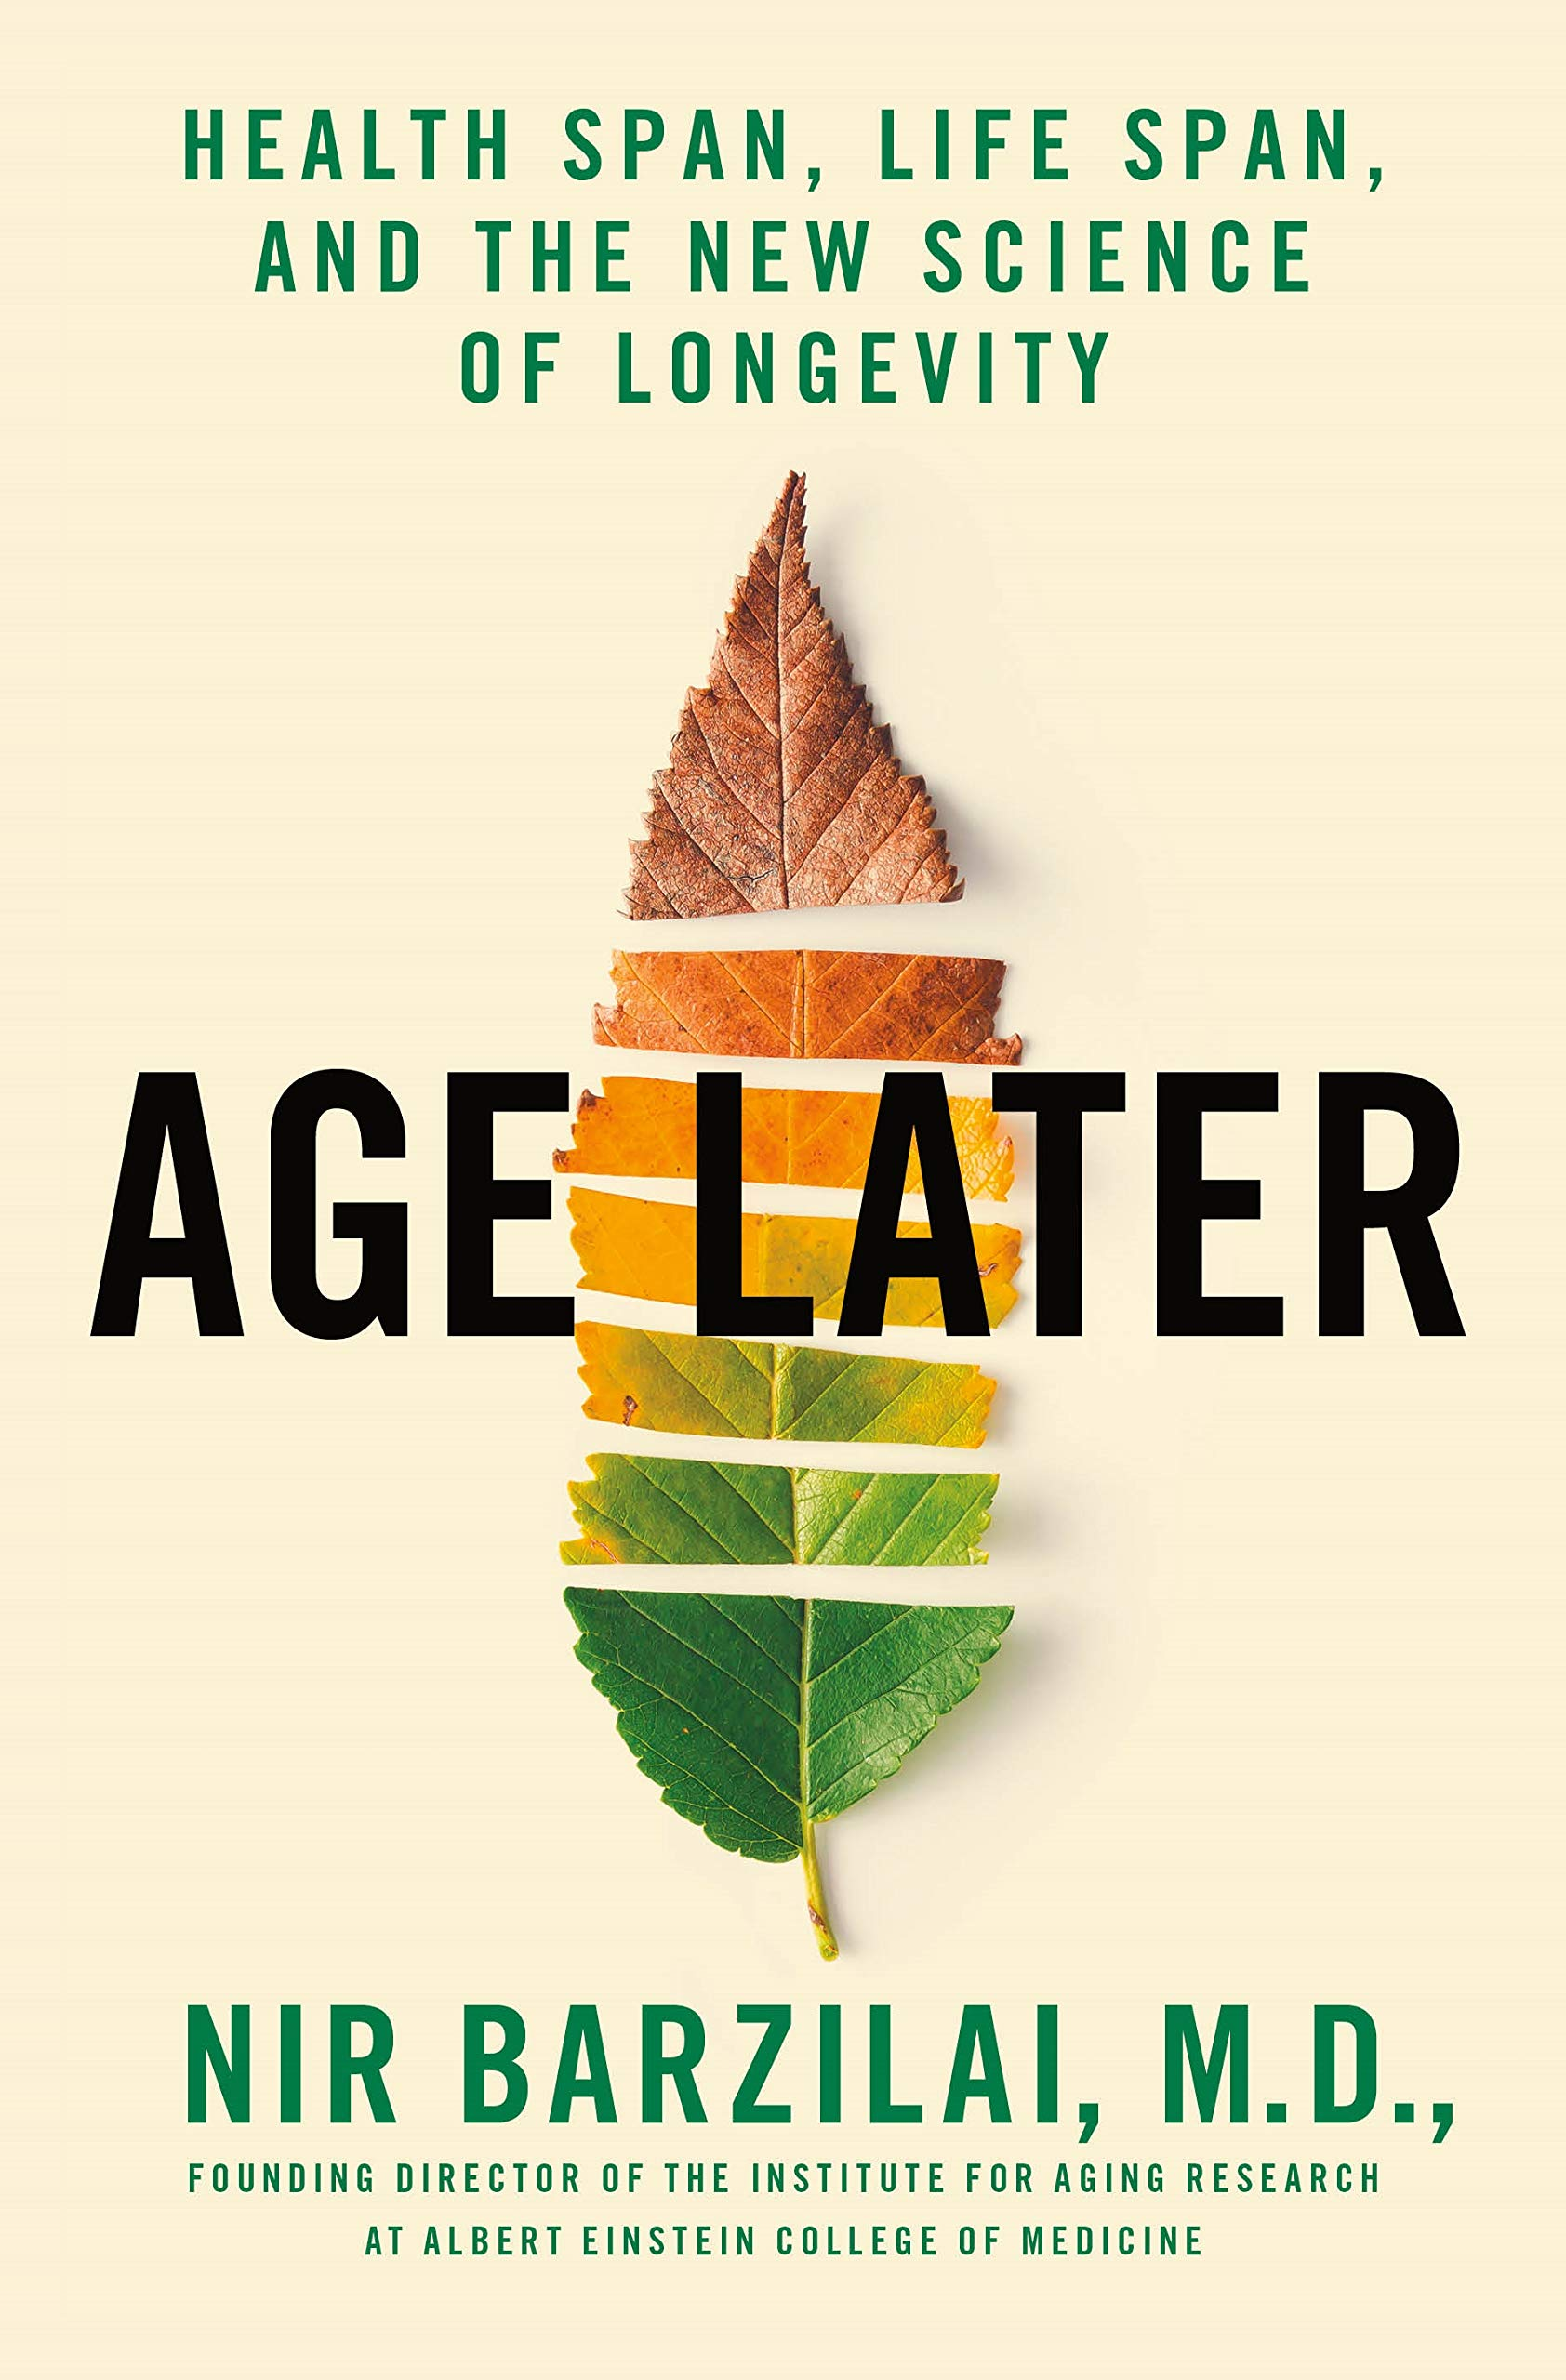 Image OfBarzilai, N: Age Later: Health Span, Life Span, And The New Science Of Longevity